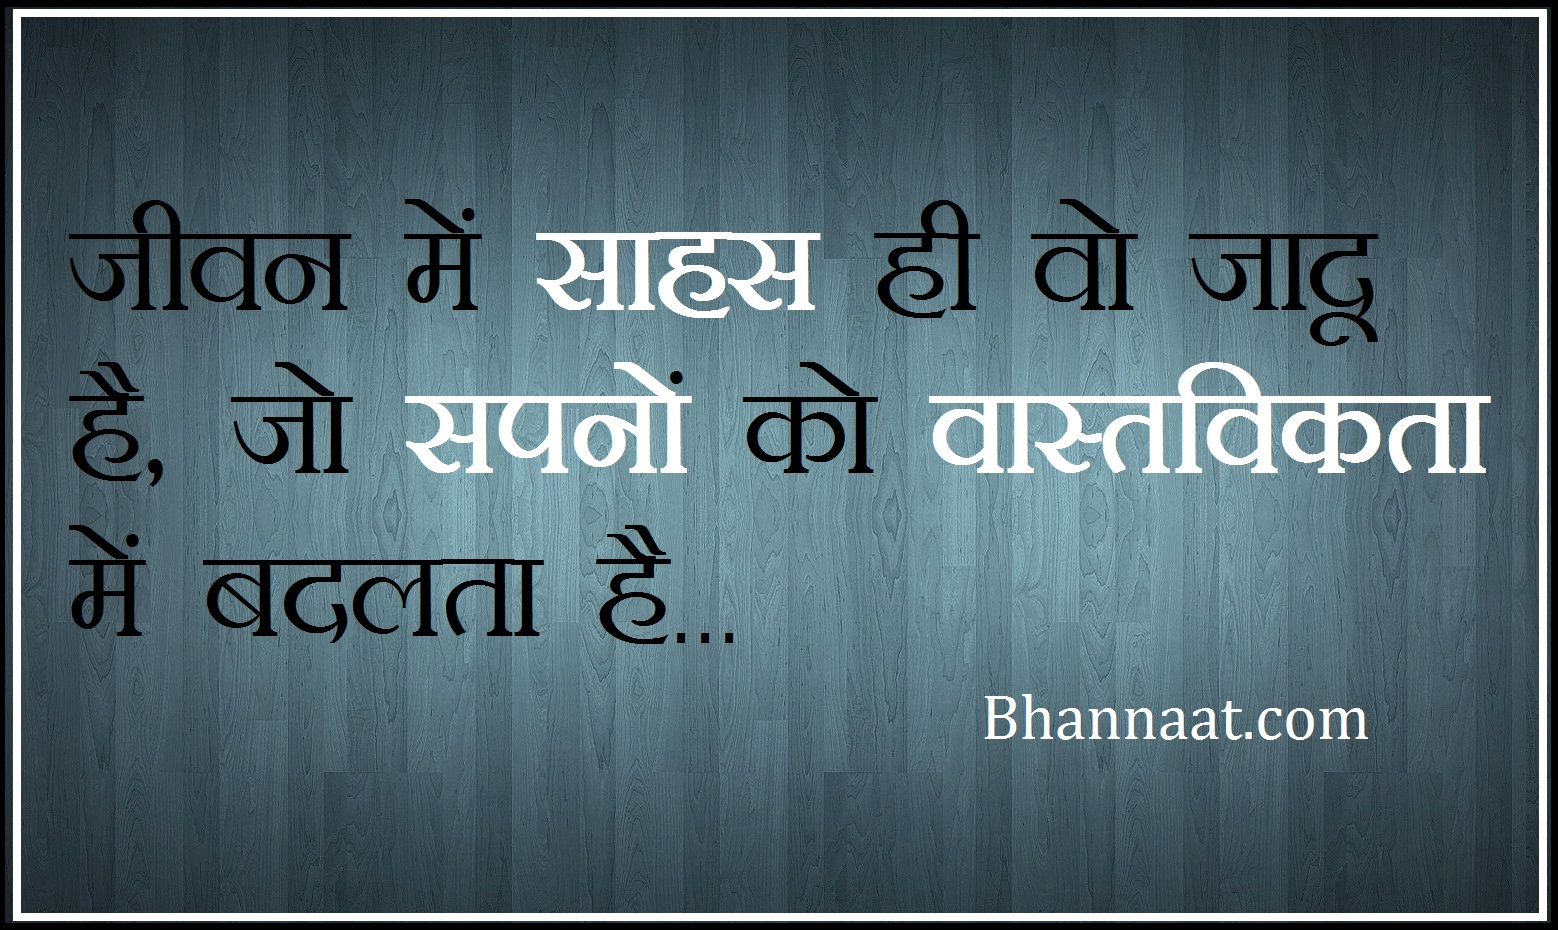 Quotes Courage Courage Quotes For Life In Hindi  Bhannaat